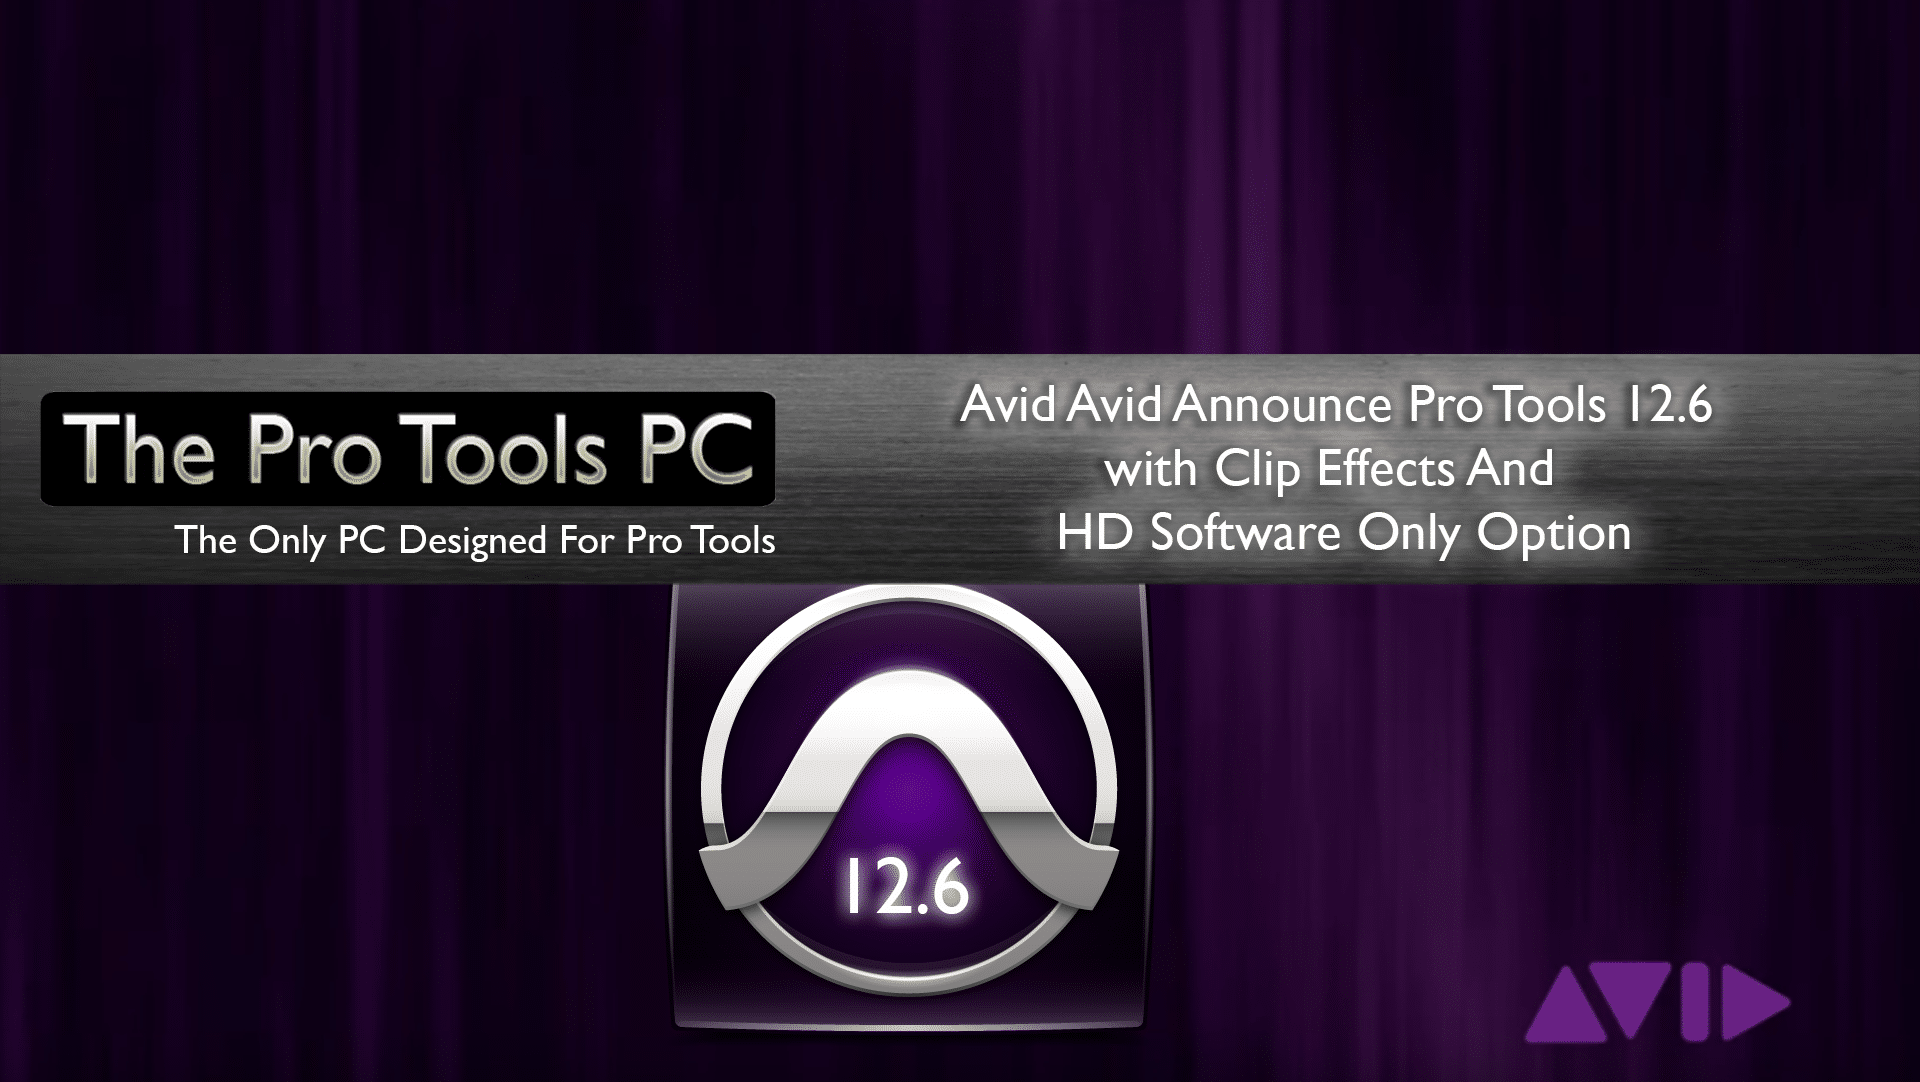 Avid Announce Pro Tools 12 6 With Clip Effects And HD